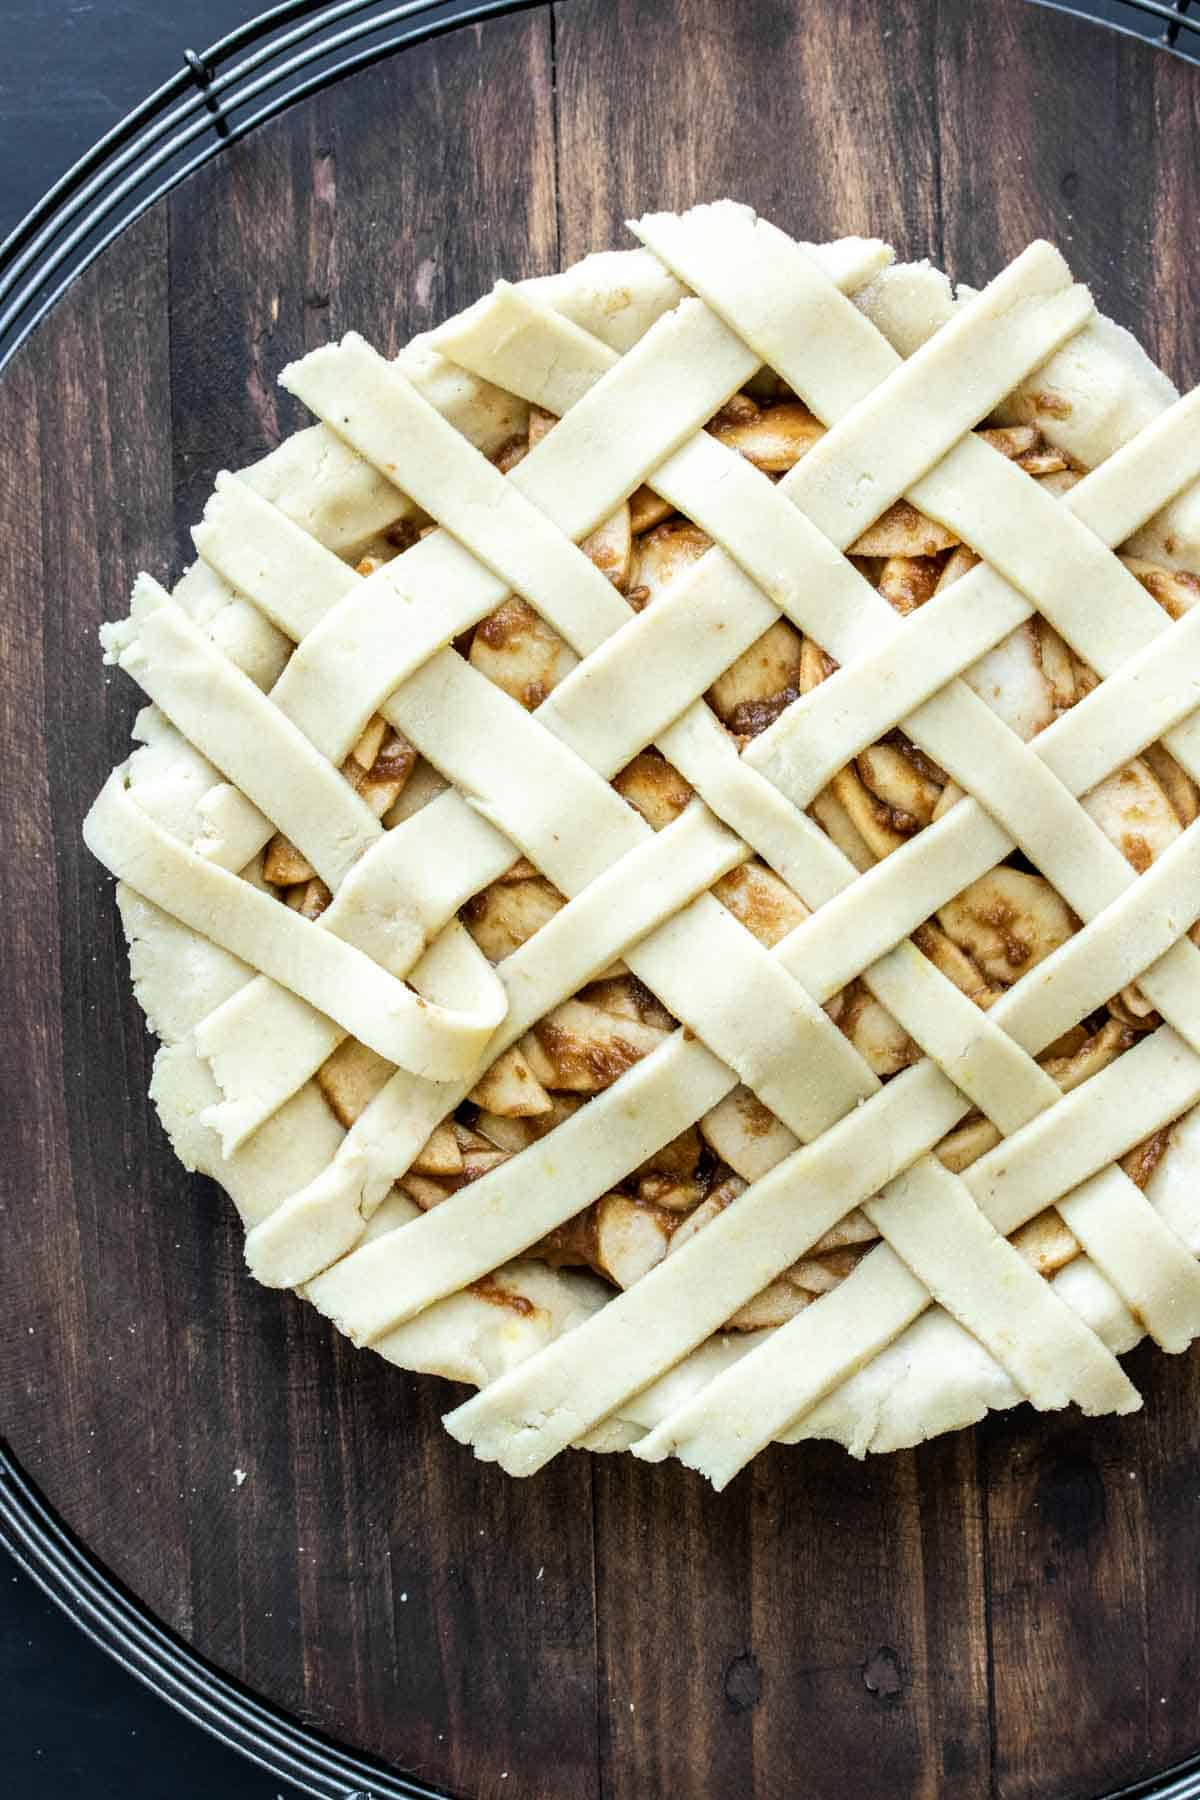 A raw apple pie with strips of pie dough being woven